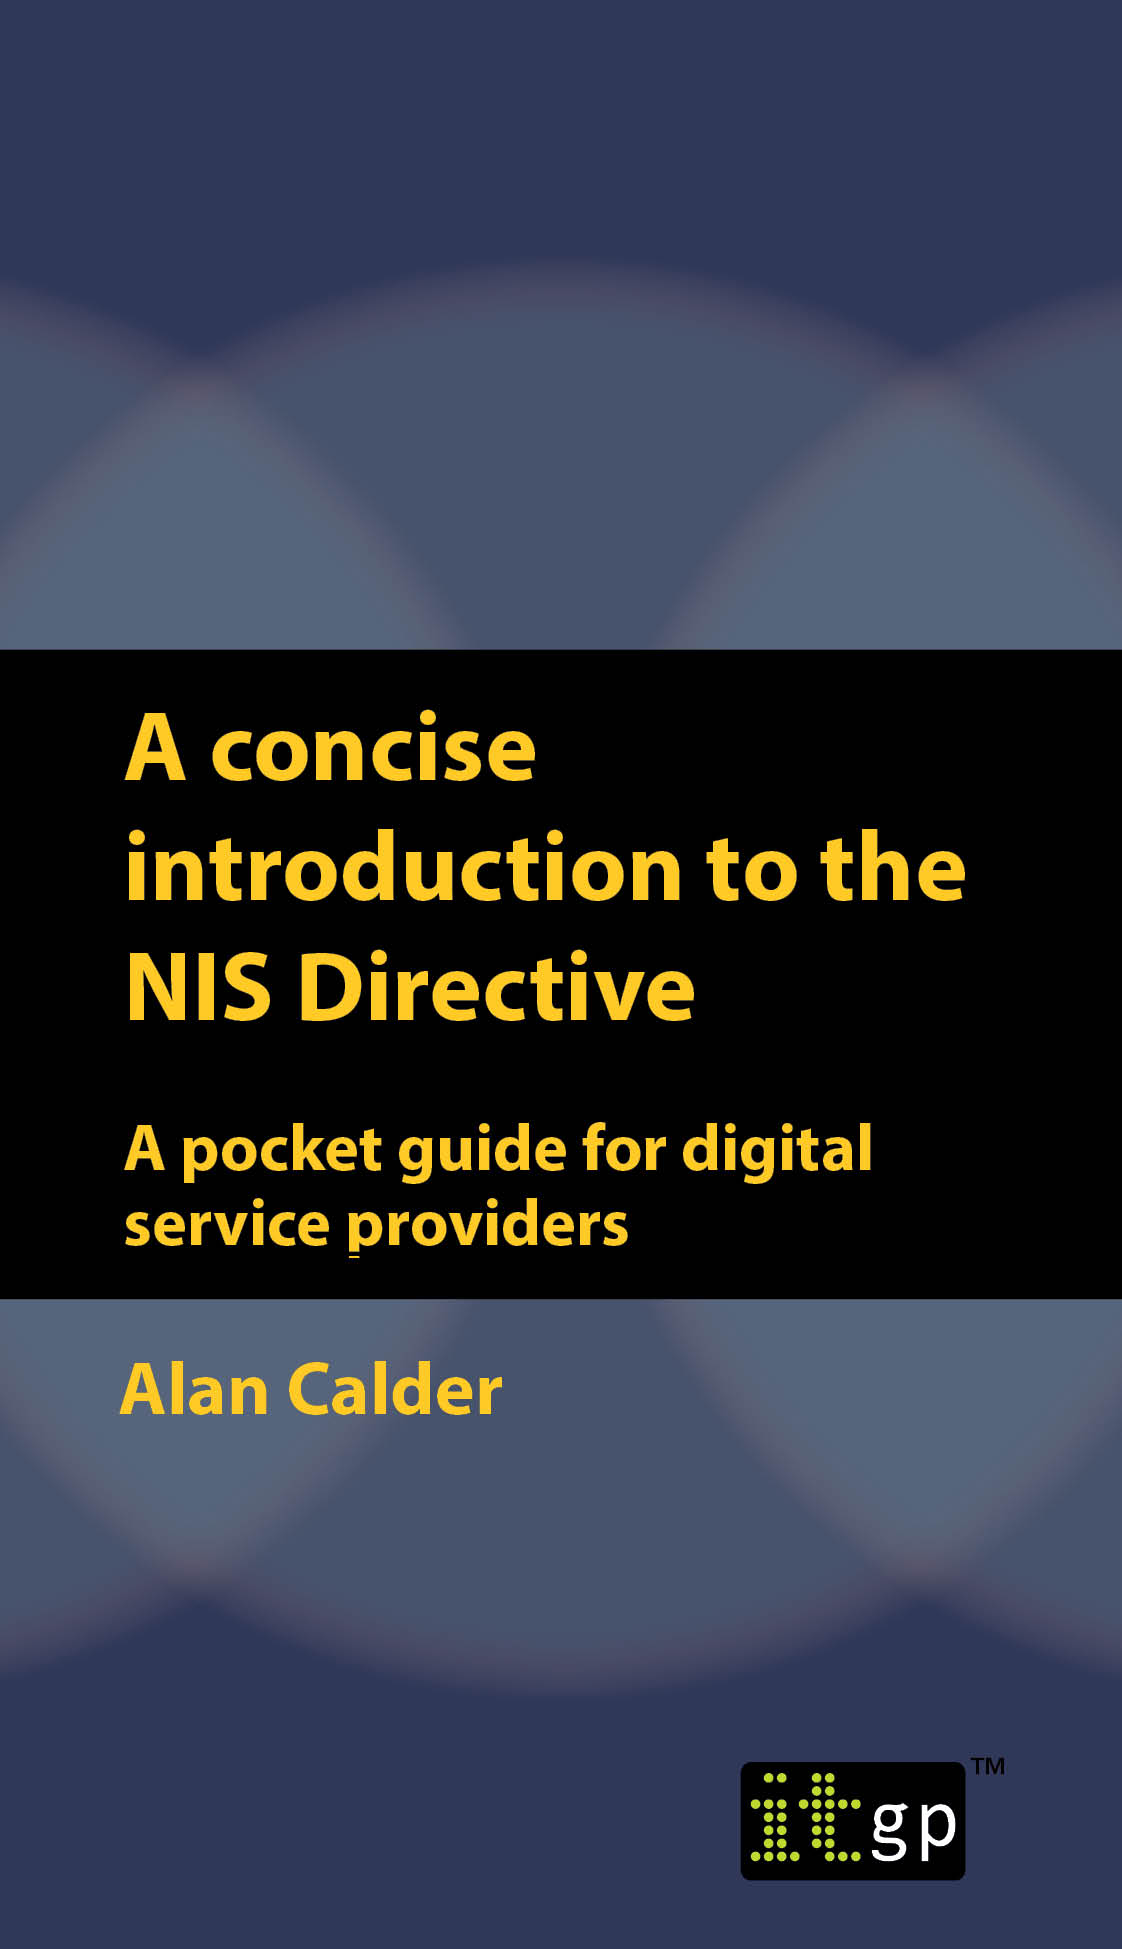 A concise introduction to the NIS Directive